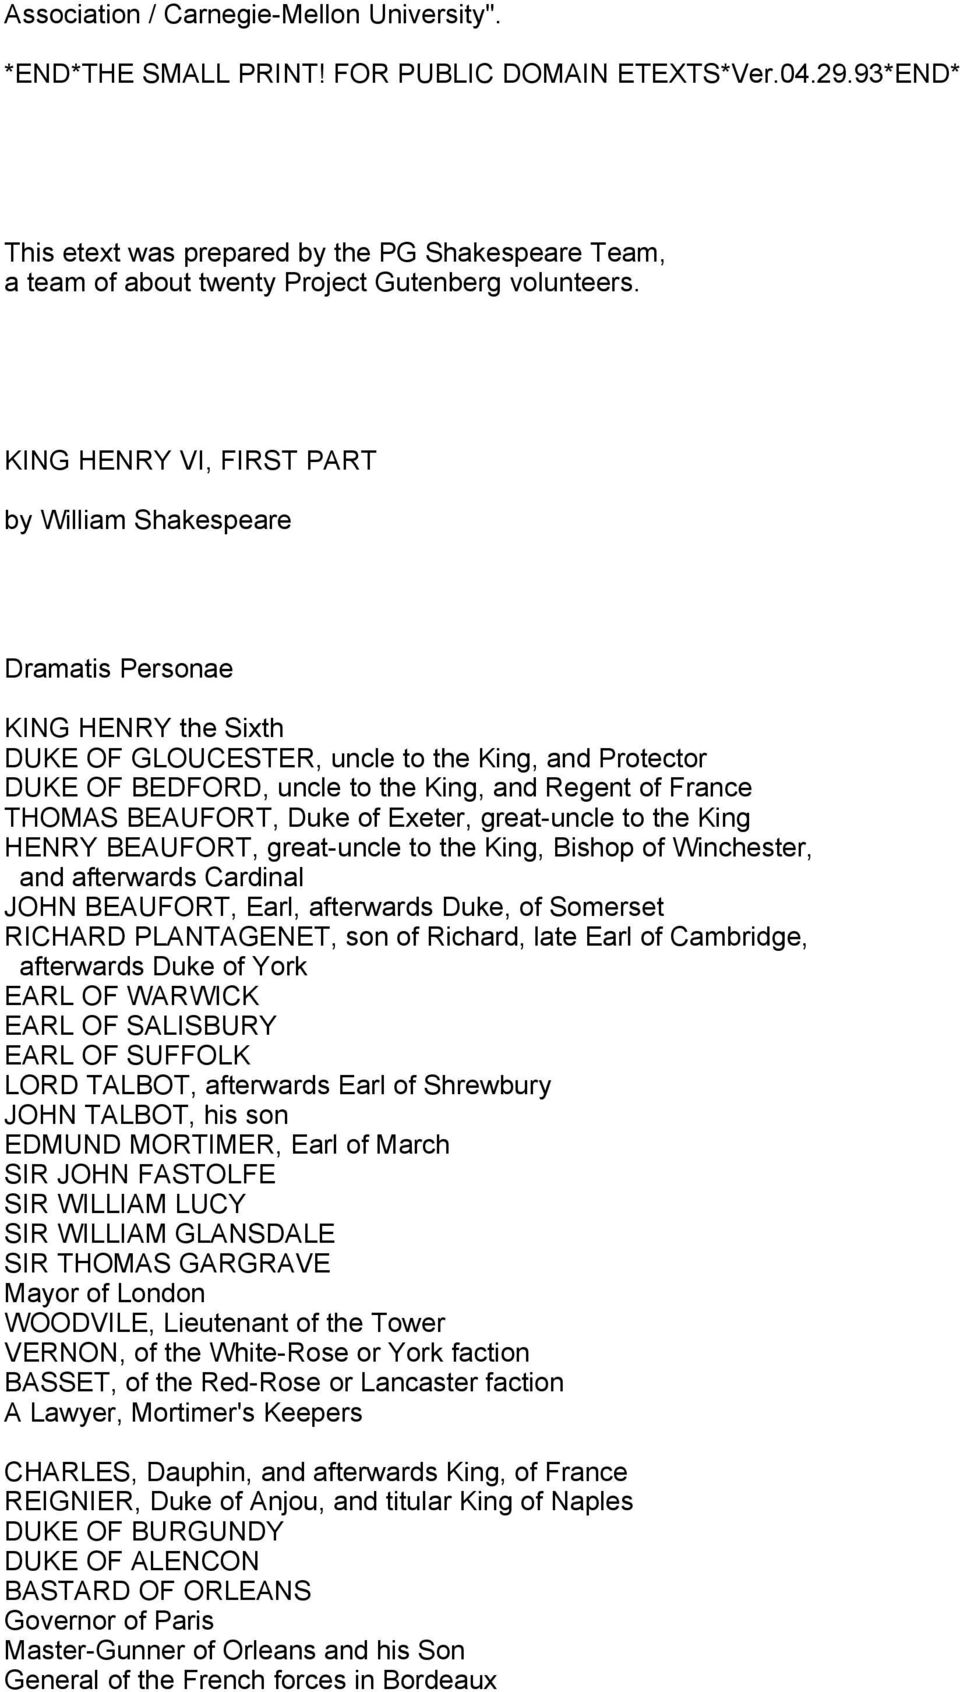 KING HENRY VI, FIRST PART by William Shakespeare Dramatis Personae KING HENRY the Sixth DUKE OF GLOUCESTER, uncle to the King, and Protector DUKE OF BEDFORD, uncle to the King, and Regent of France